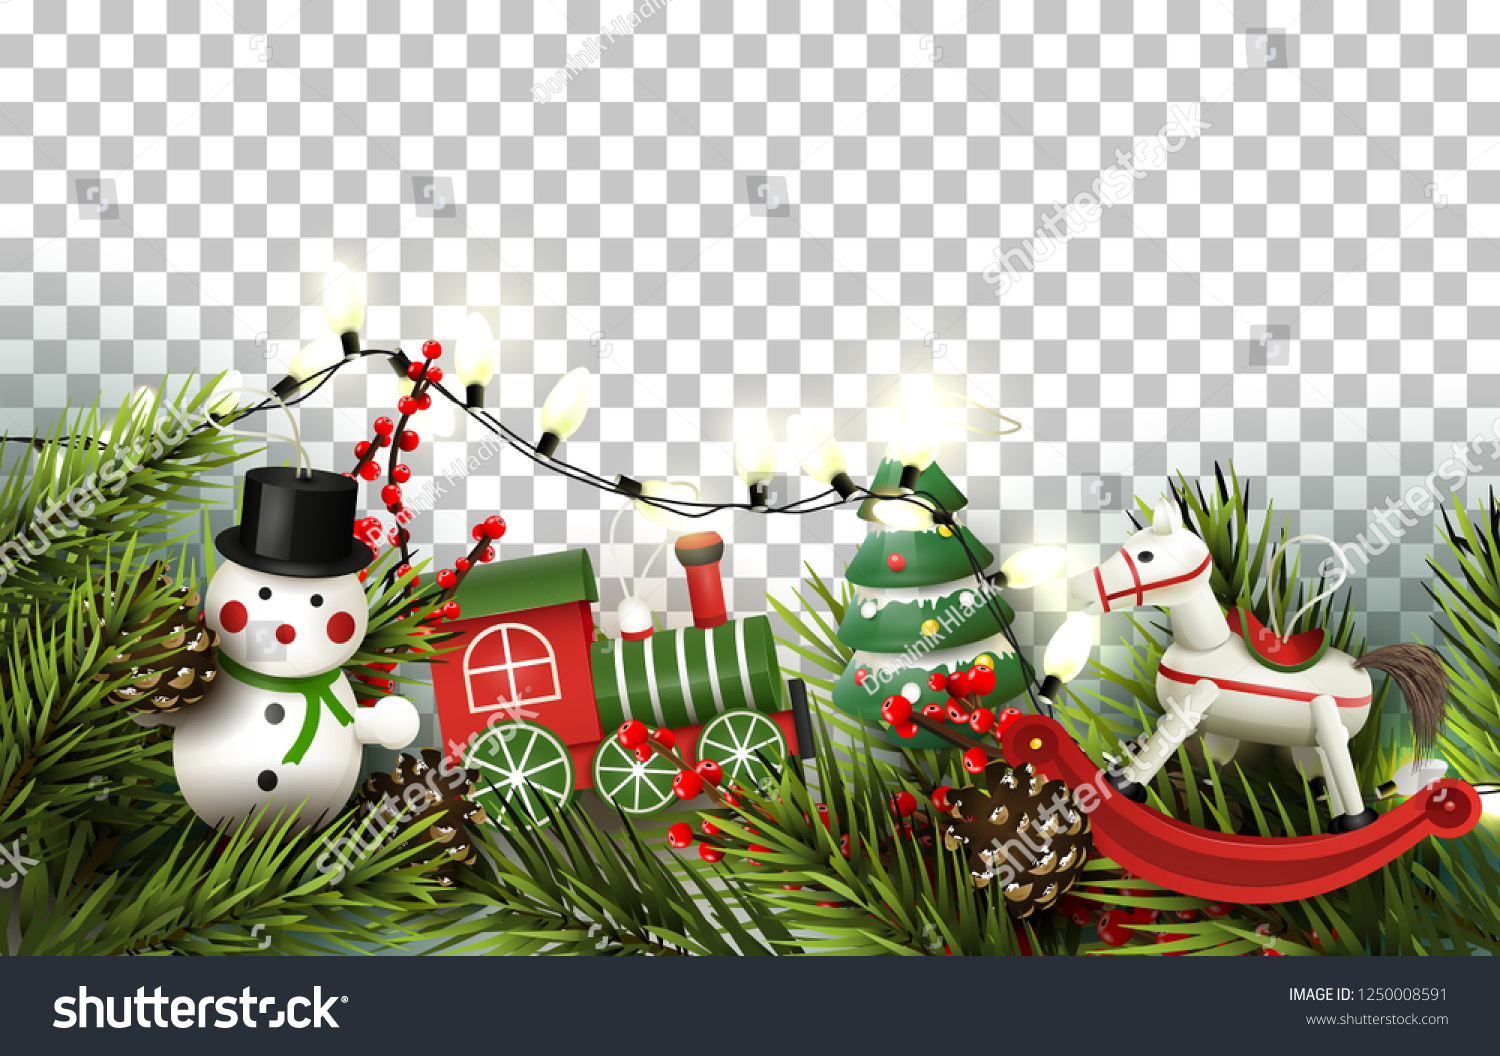 Christmas Border Branches Wooden Toys Decorations Stock Vector